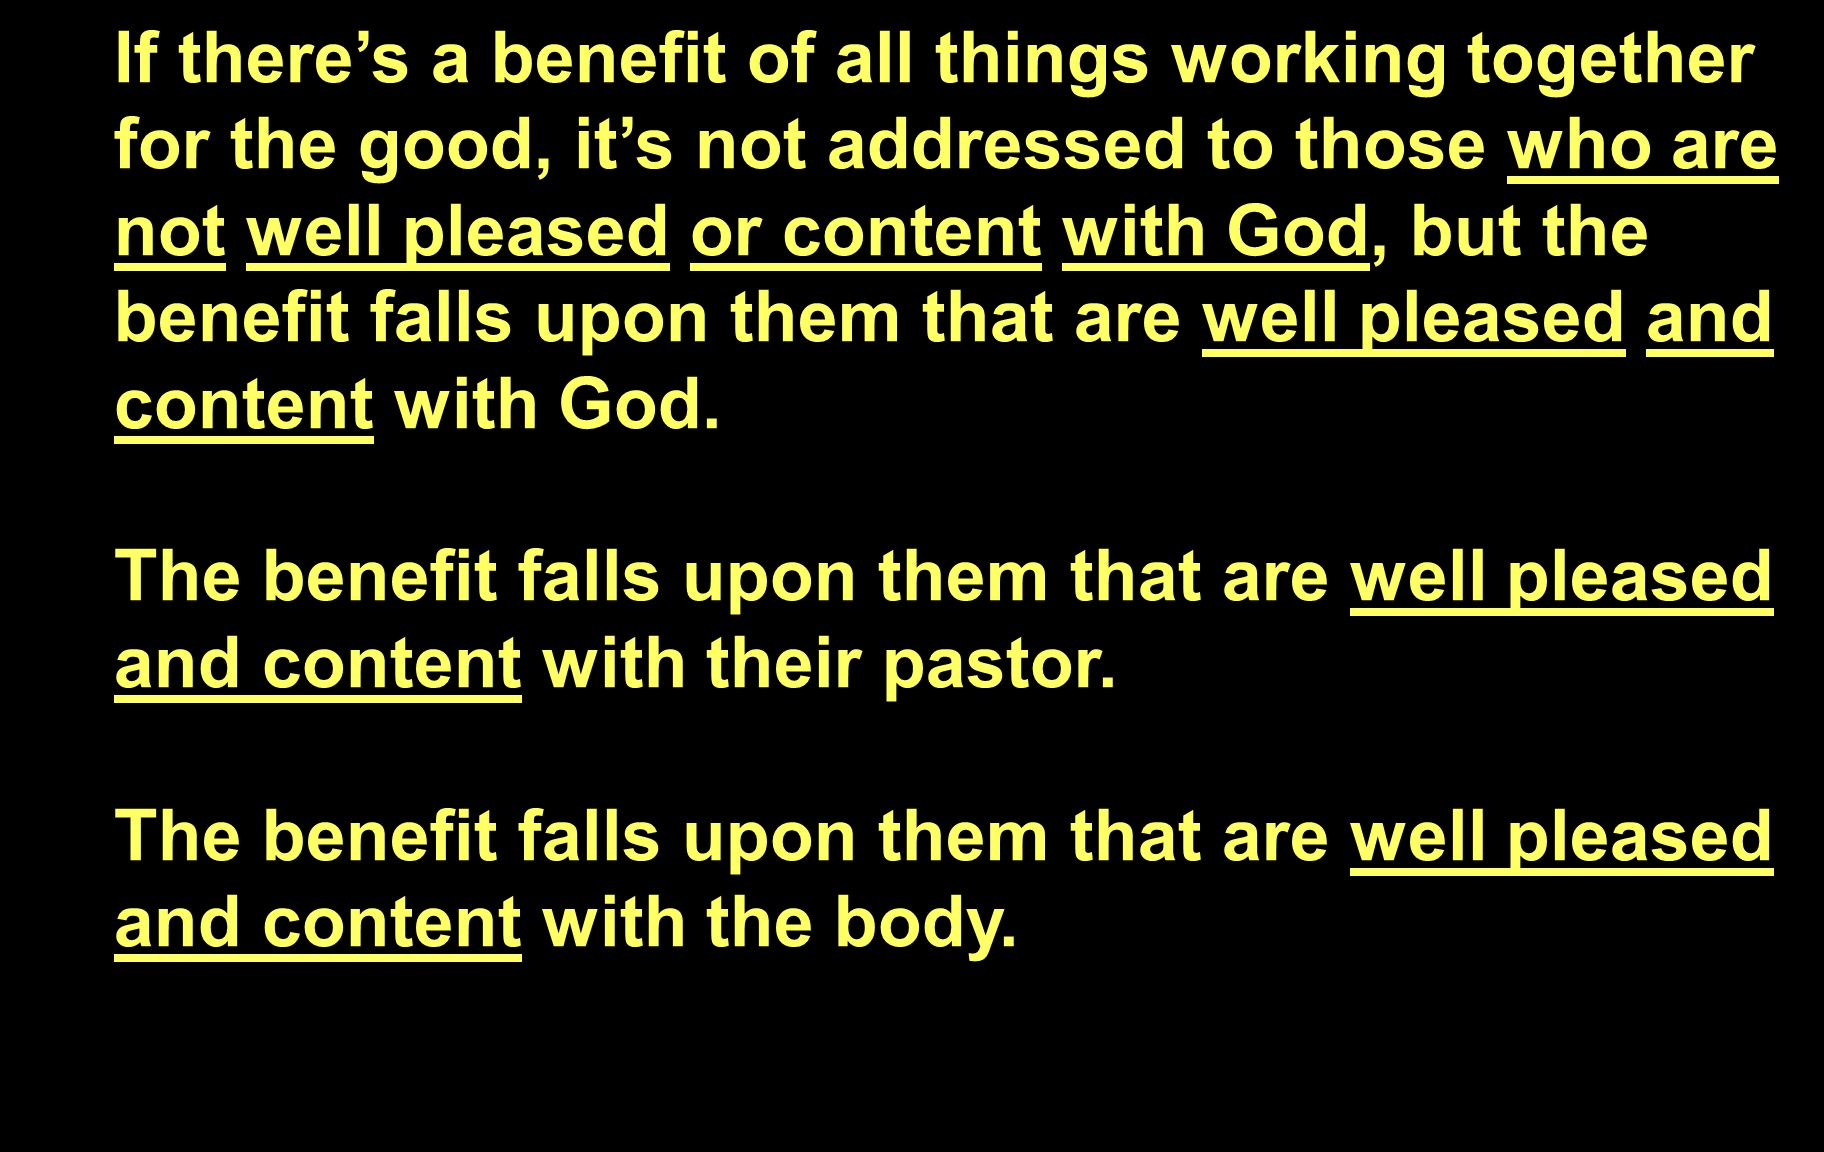 If there's a benefit of all things working together for the good, it's not addressed to those who are not well pleased or content with God, but the benefit falls upon them that are well pleased and content with God.